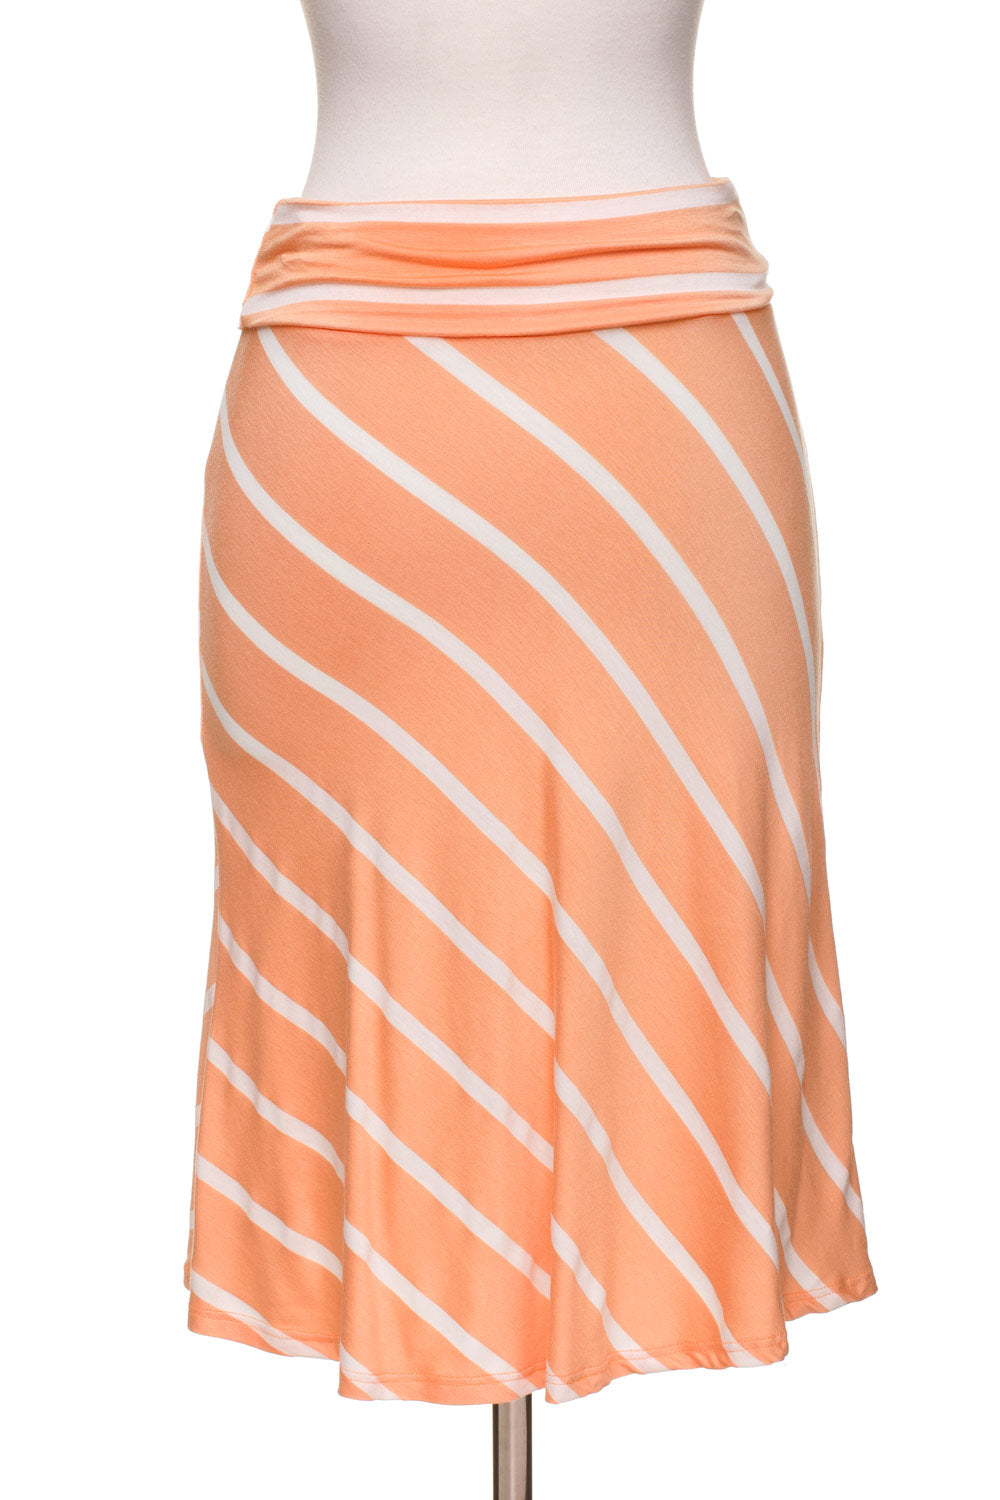 Type 1 Orange Creamsicle Skirt